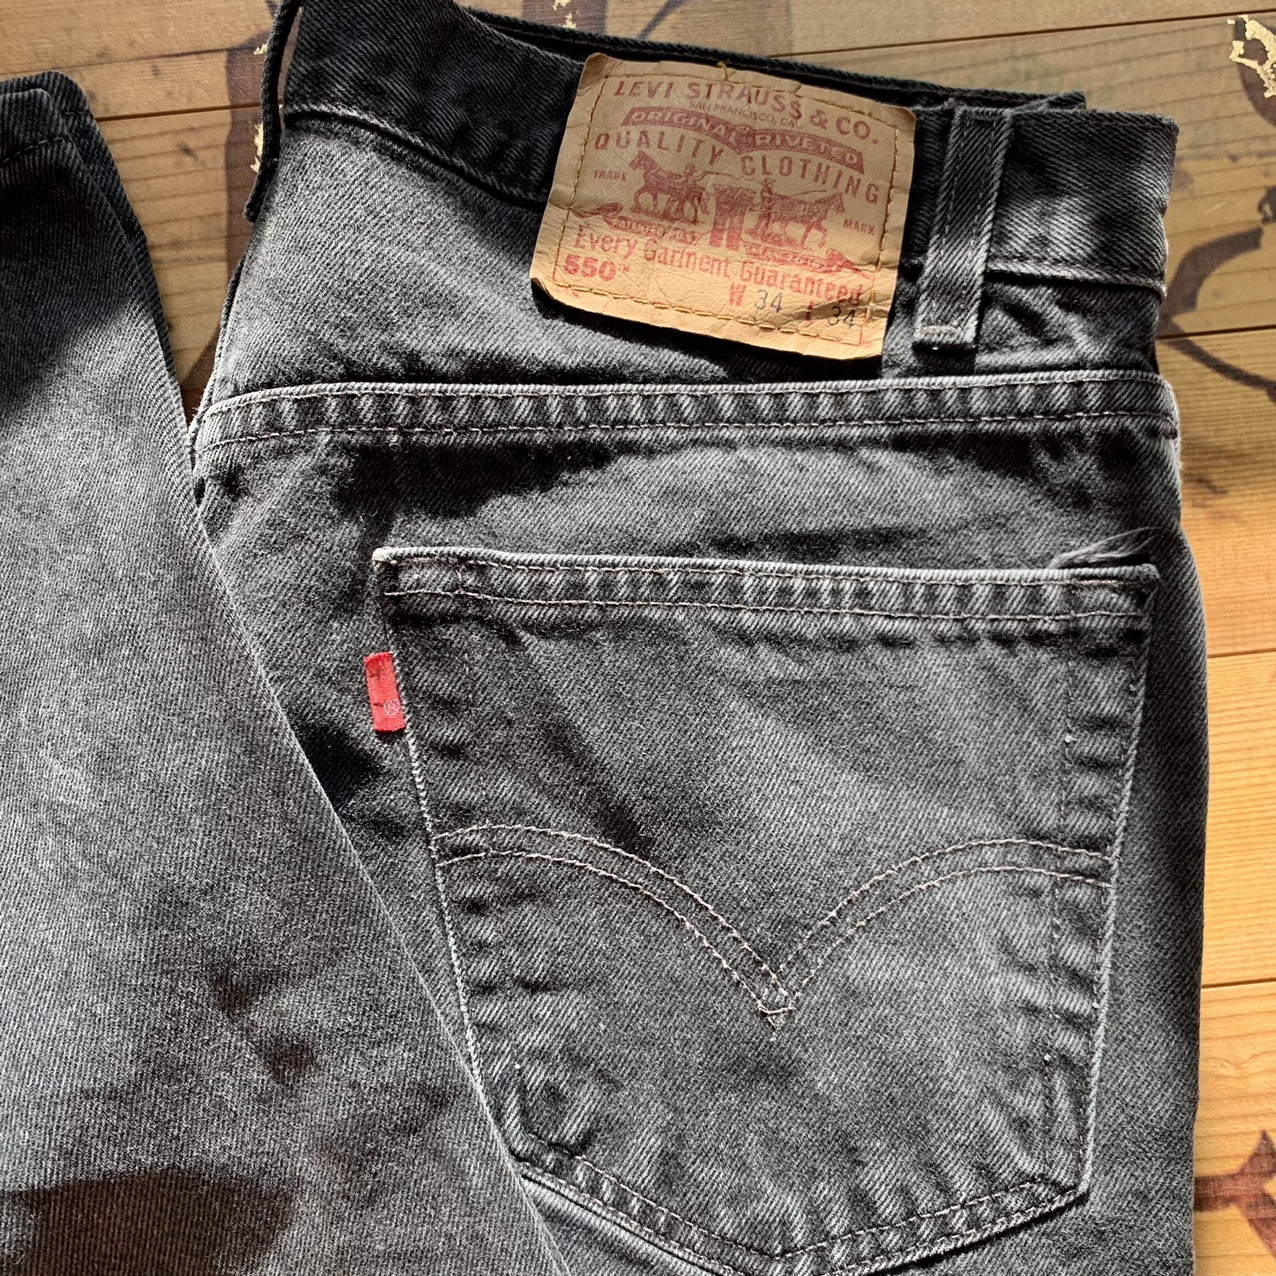 Product Image 2 - Relaxed Black Wash Levi's almost brand